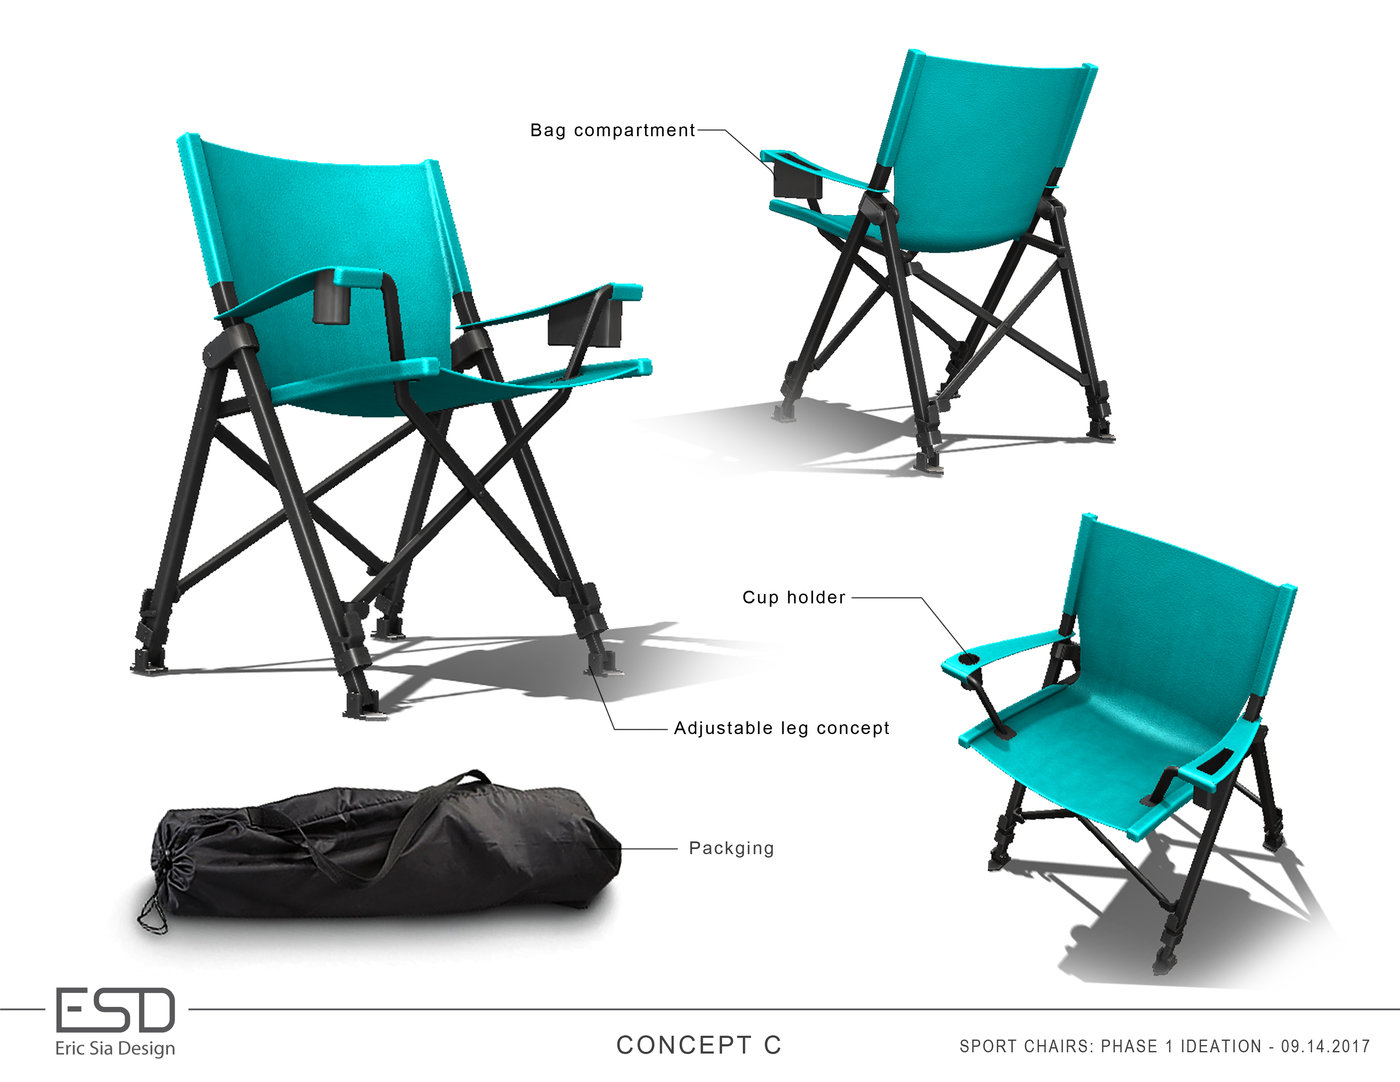 Amazing Folding Chairs Concepts By Eric Sia At Coroflot Com Ncnpc Chair Design For Home Ncnpcorg